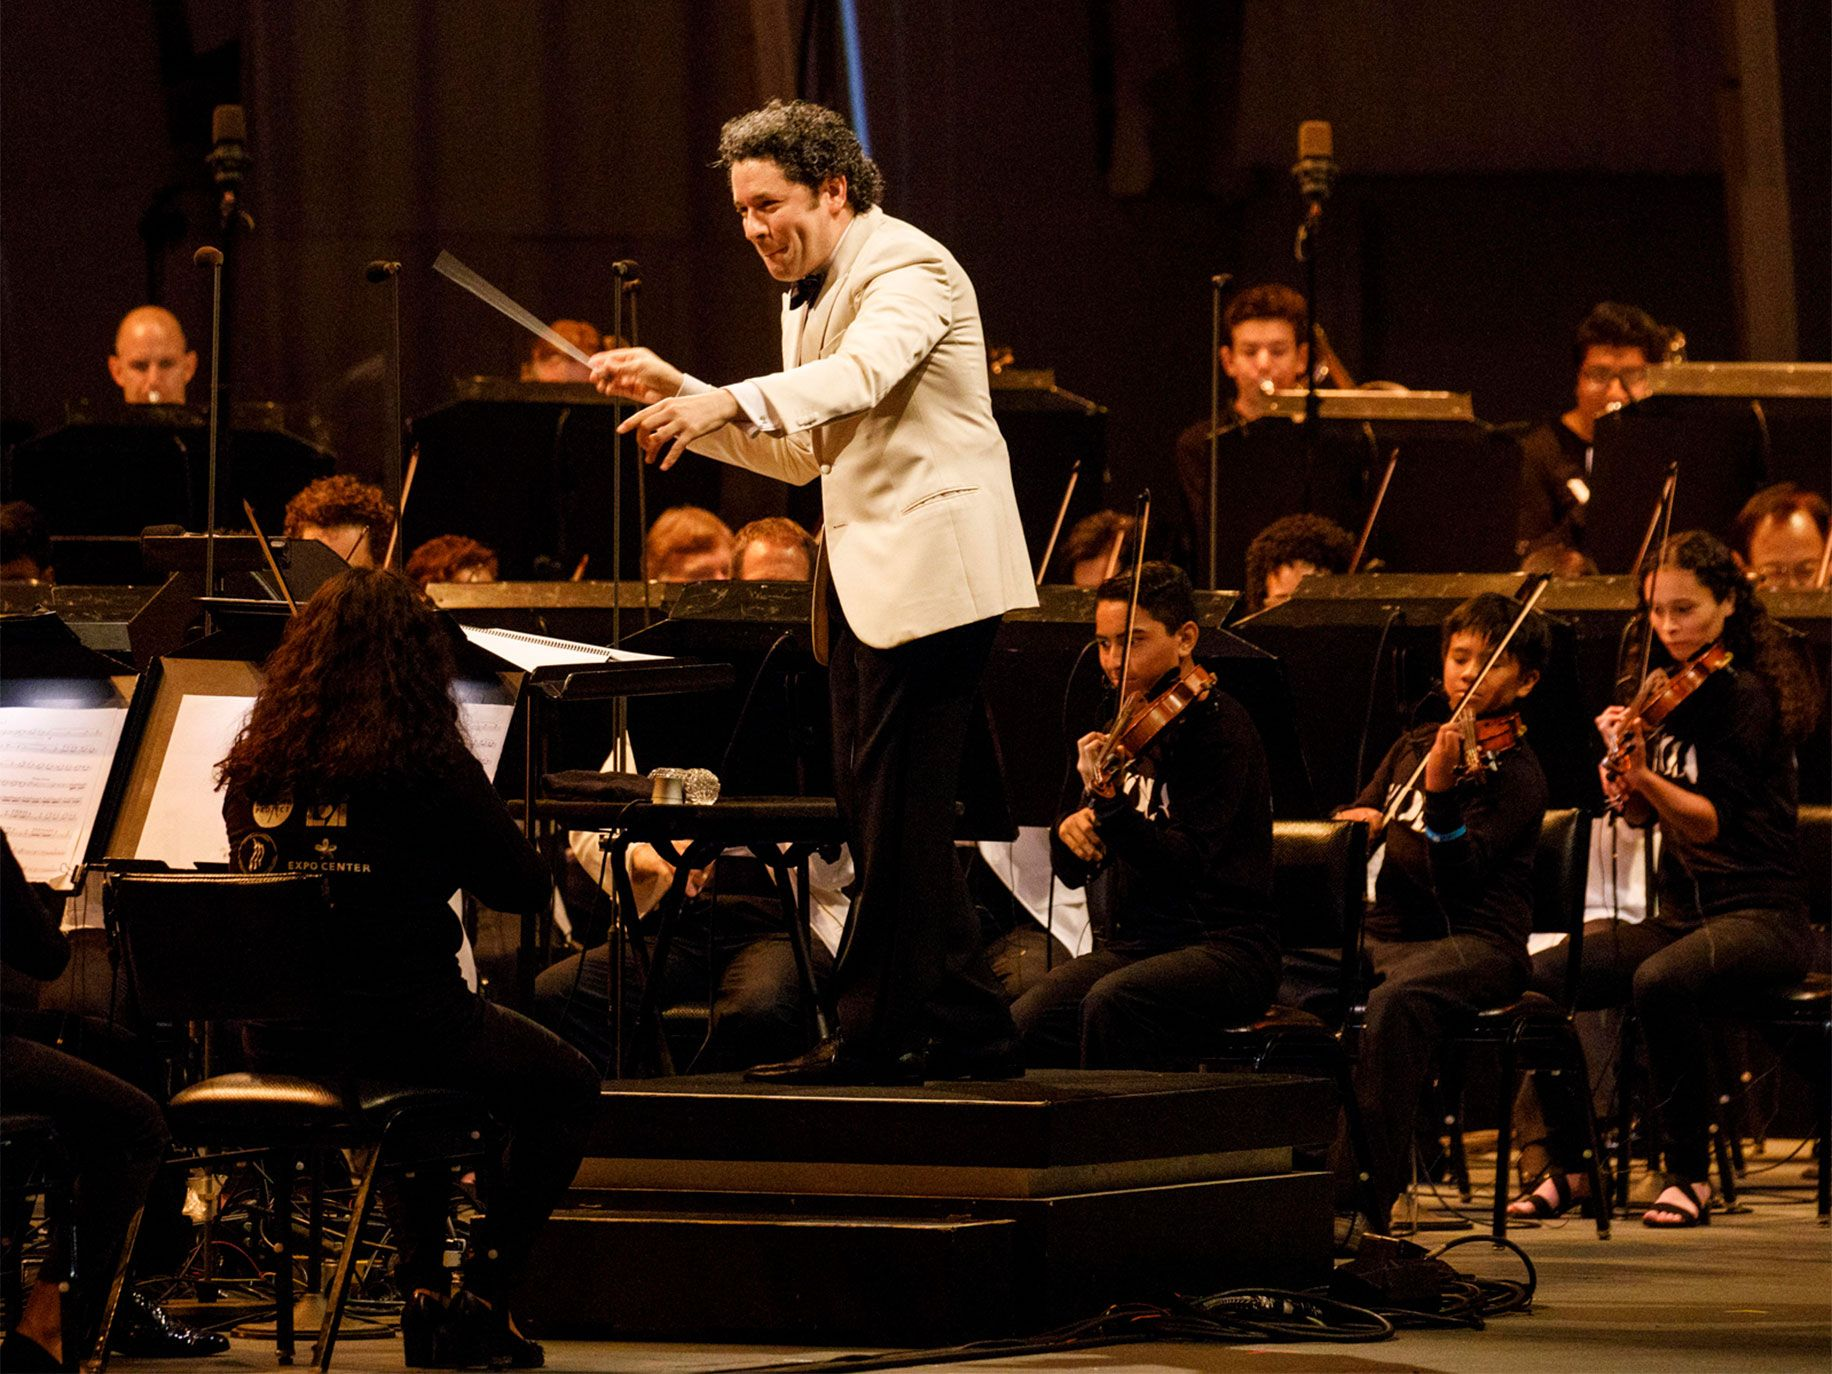 Music director Gustavo Dudamel has helped the L.A. Philharmonic's programming become more inclusive and better reflect the diversity of Los Angeles.